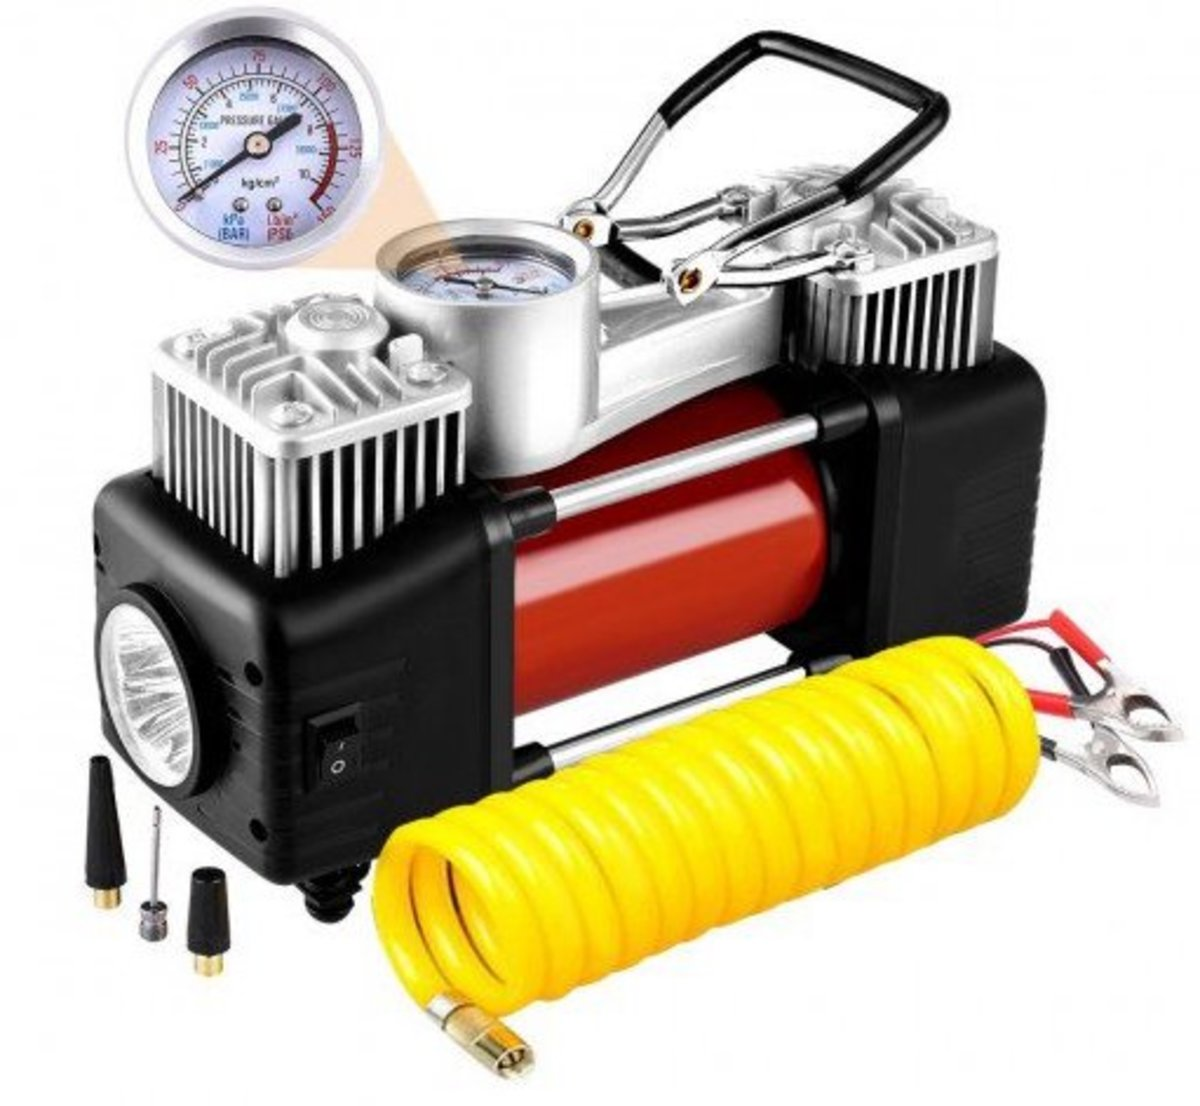 The Audew 2-Cylinder air compressor